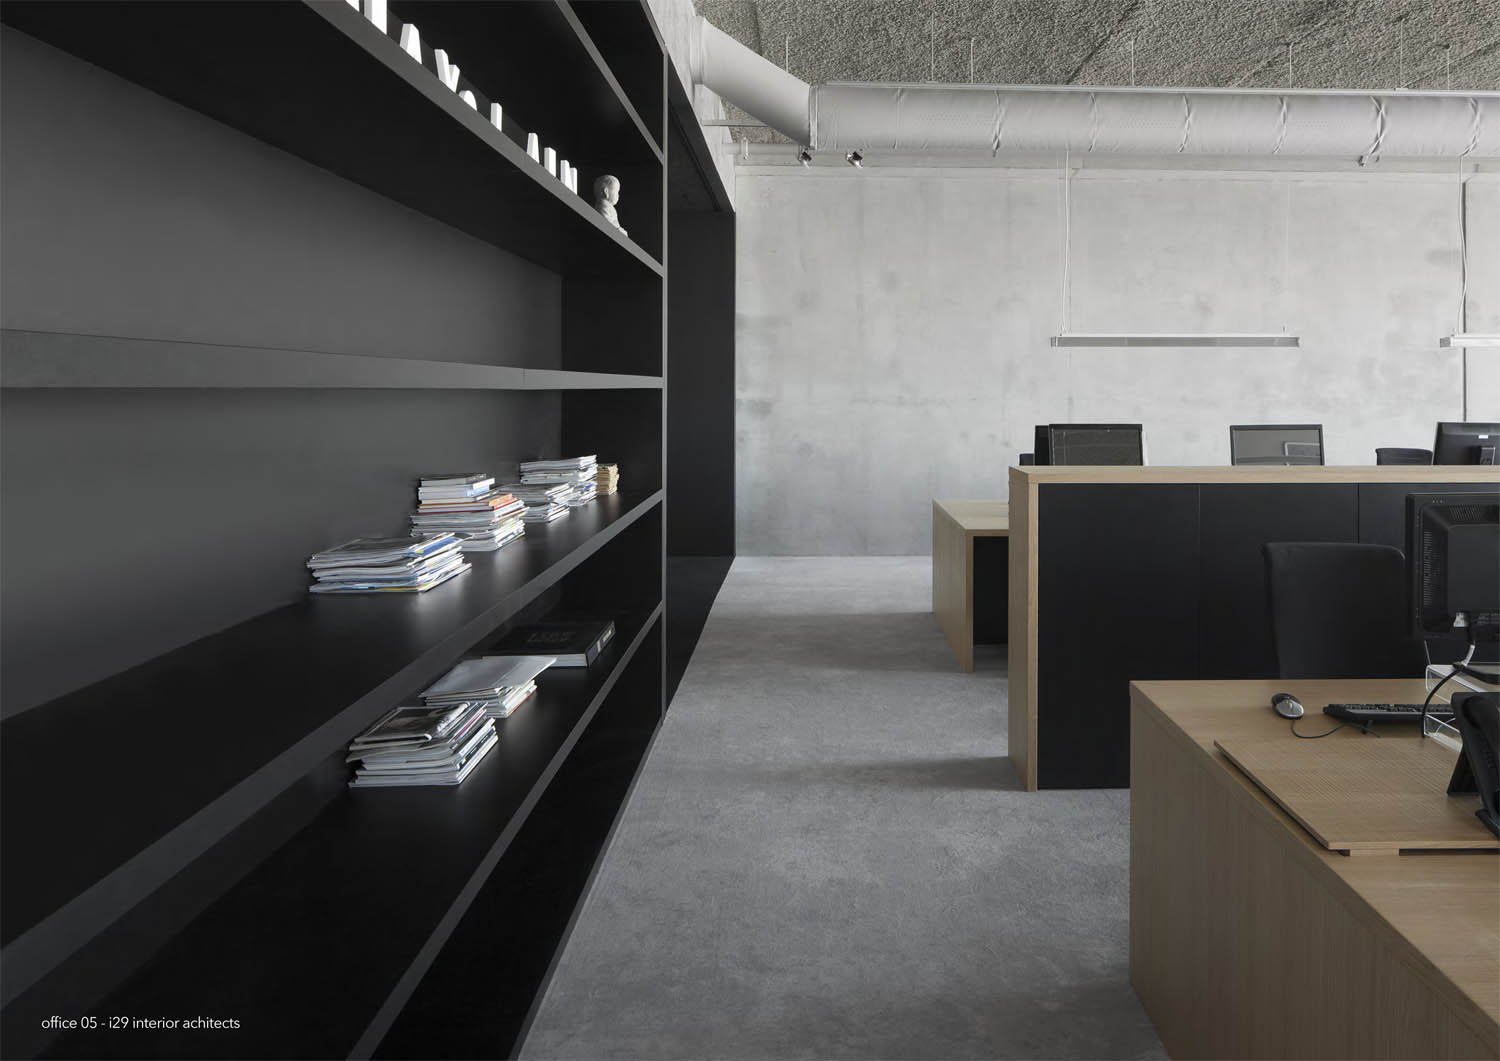 mm_office 05 design by i29 interior Architects_03